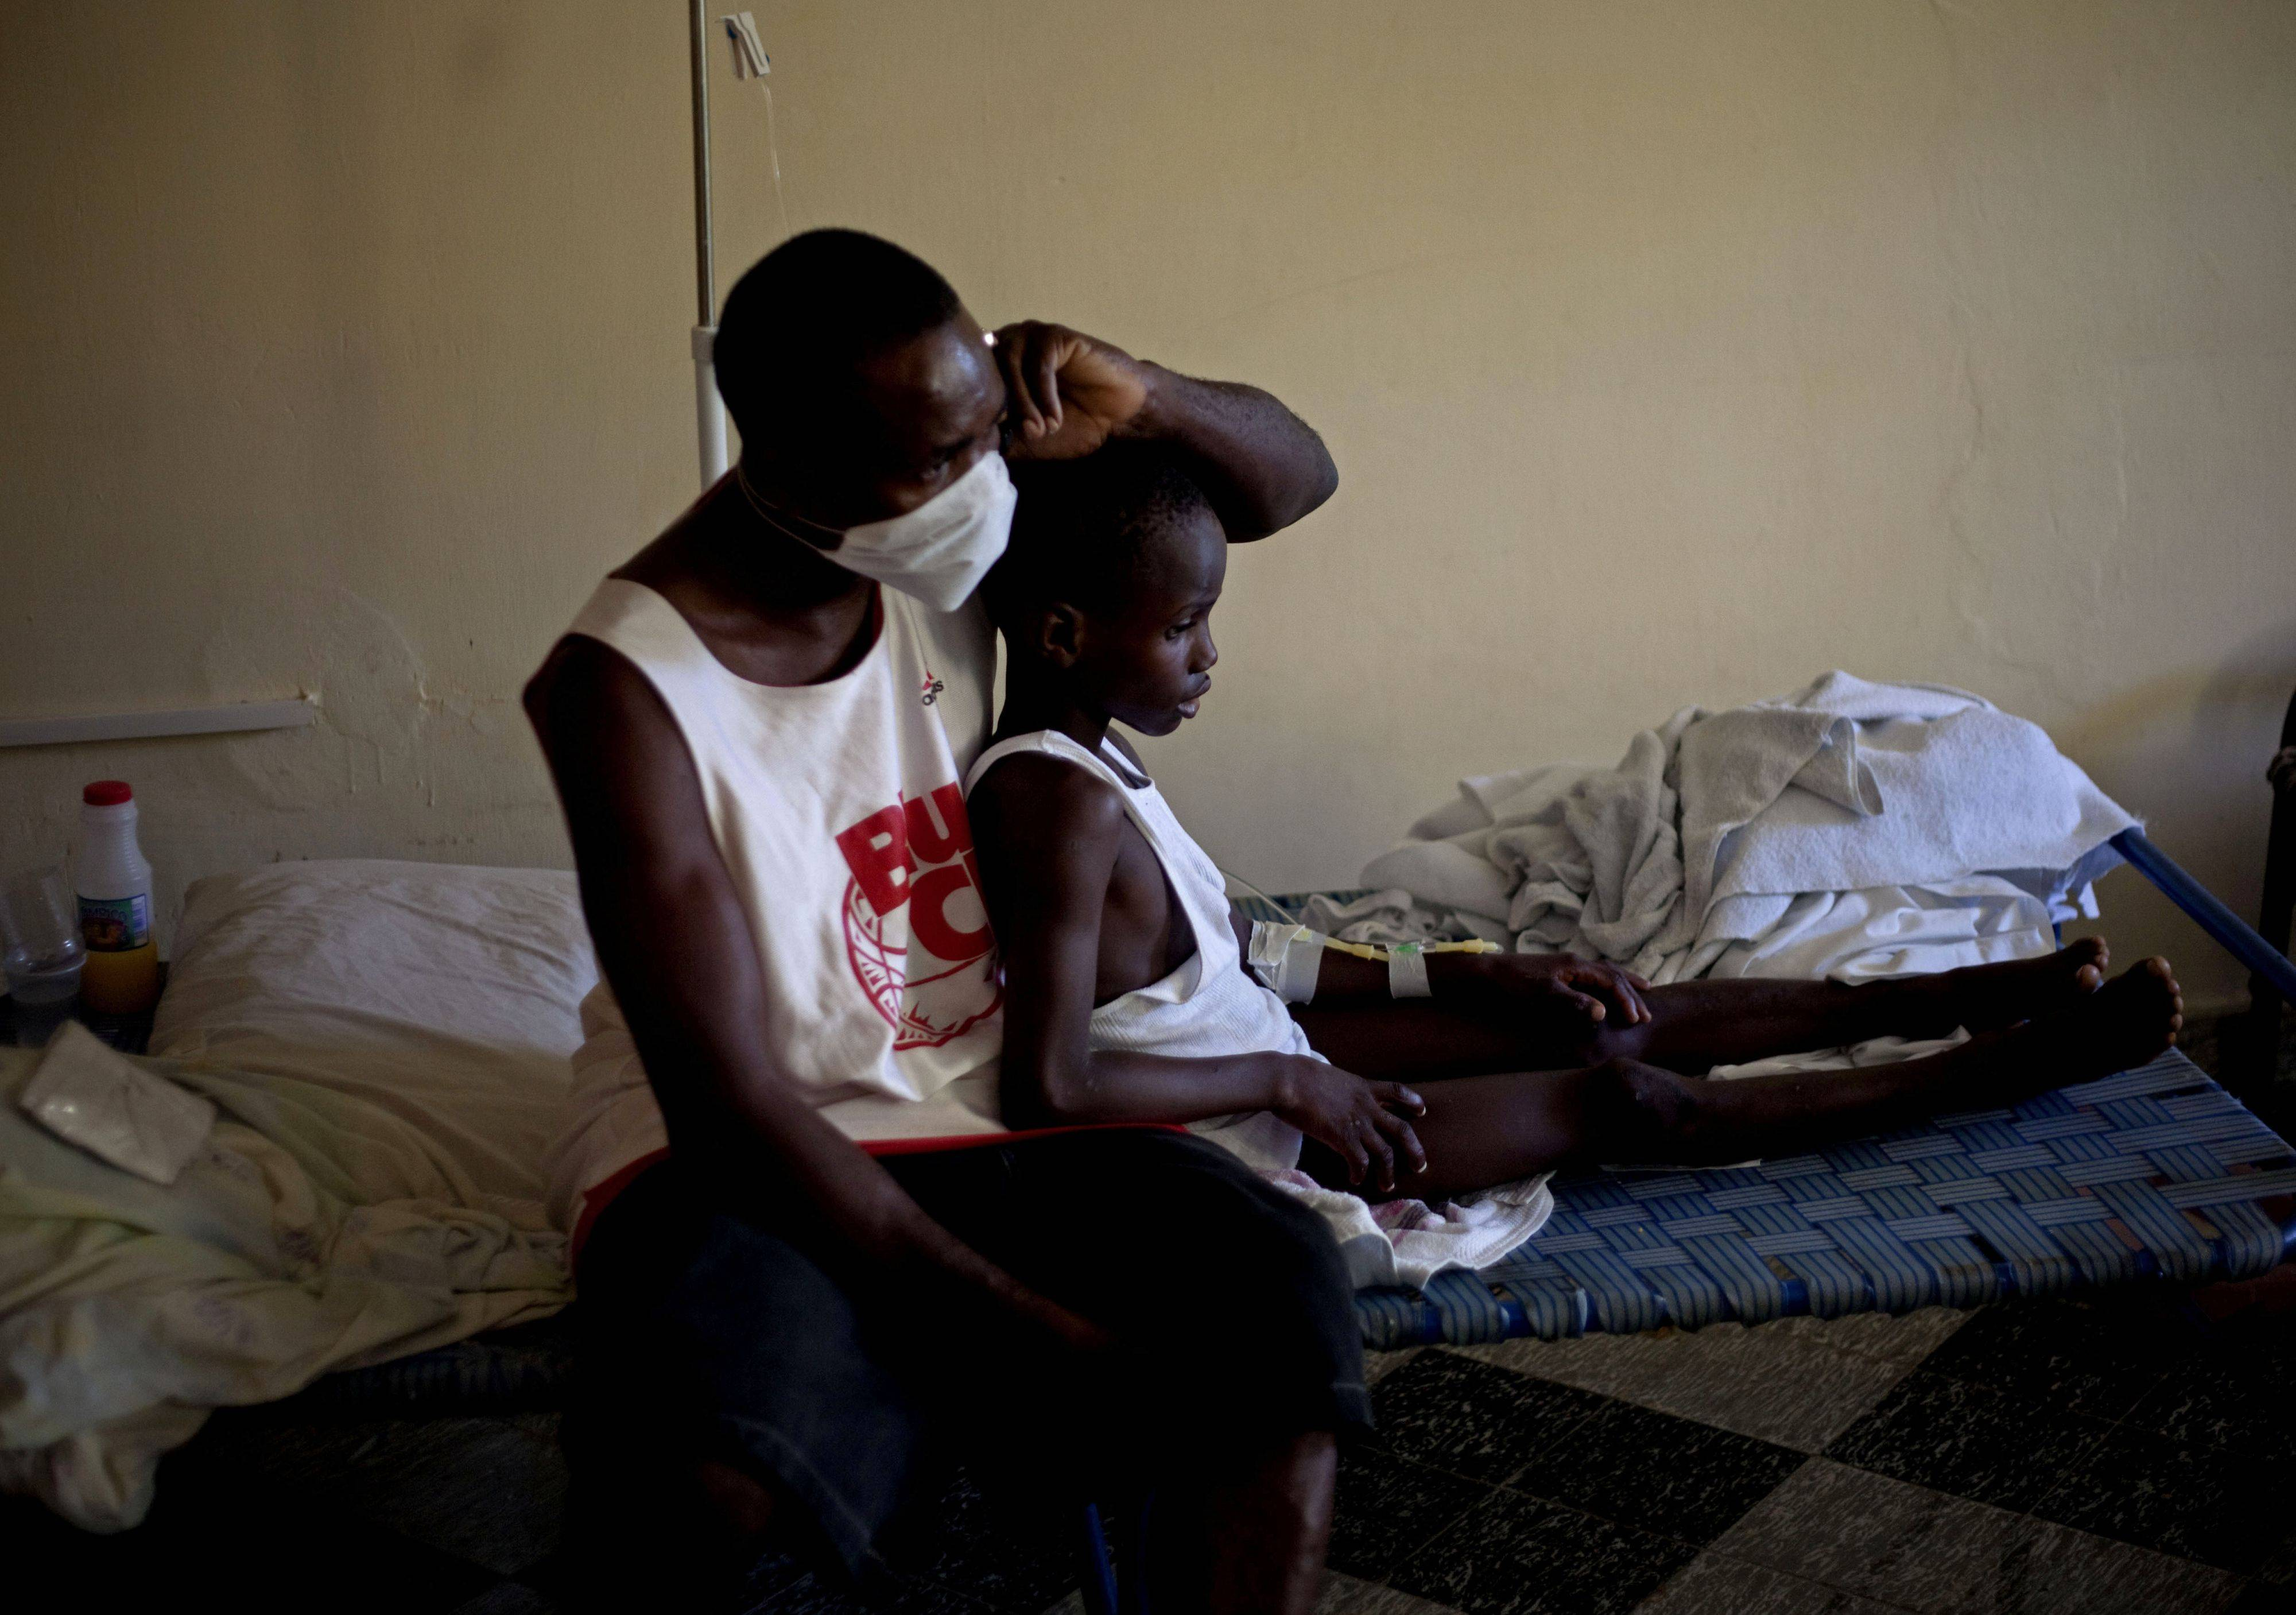 Images from cholera outbreak in Haiti